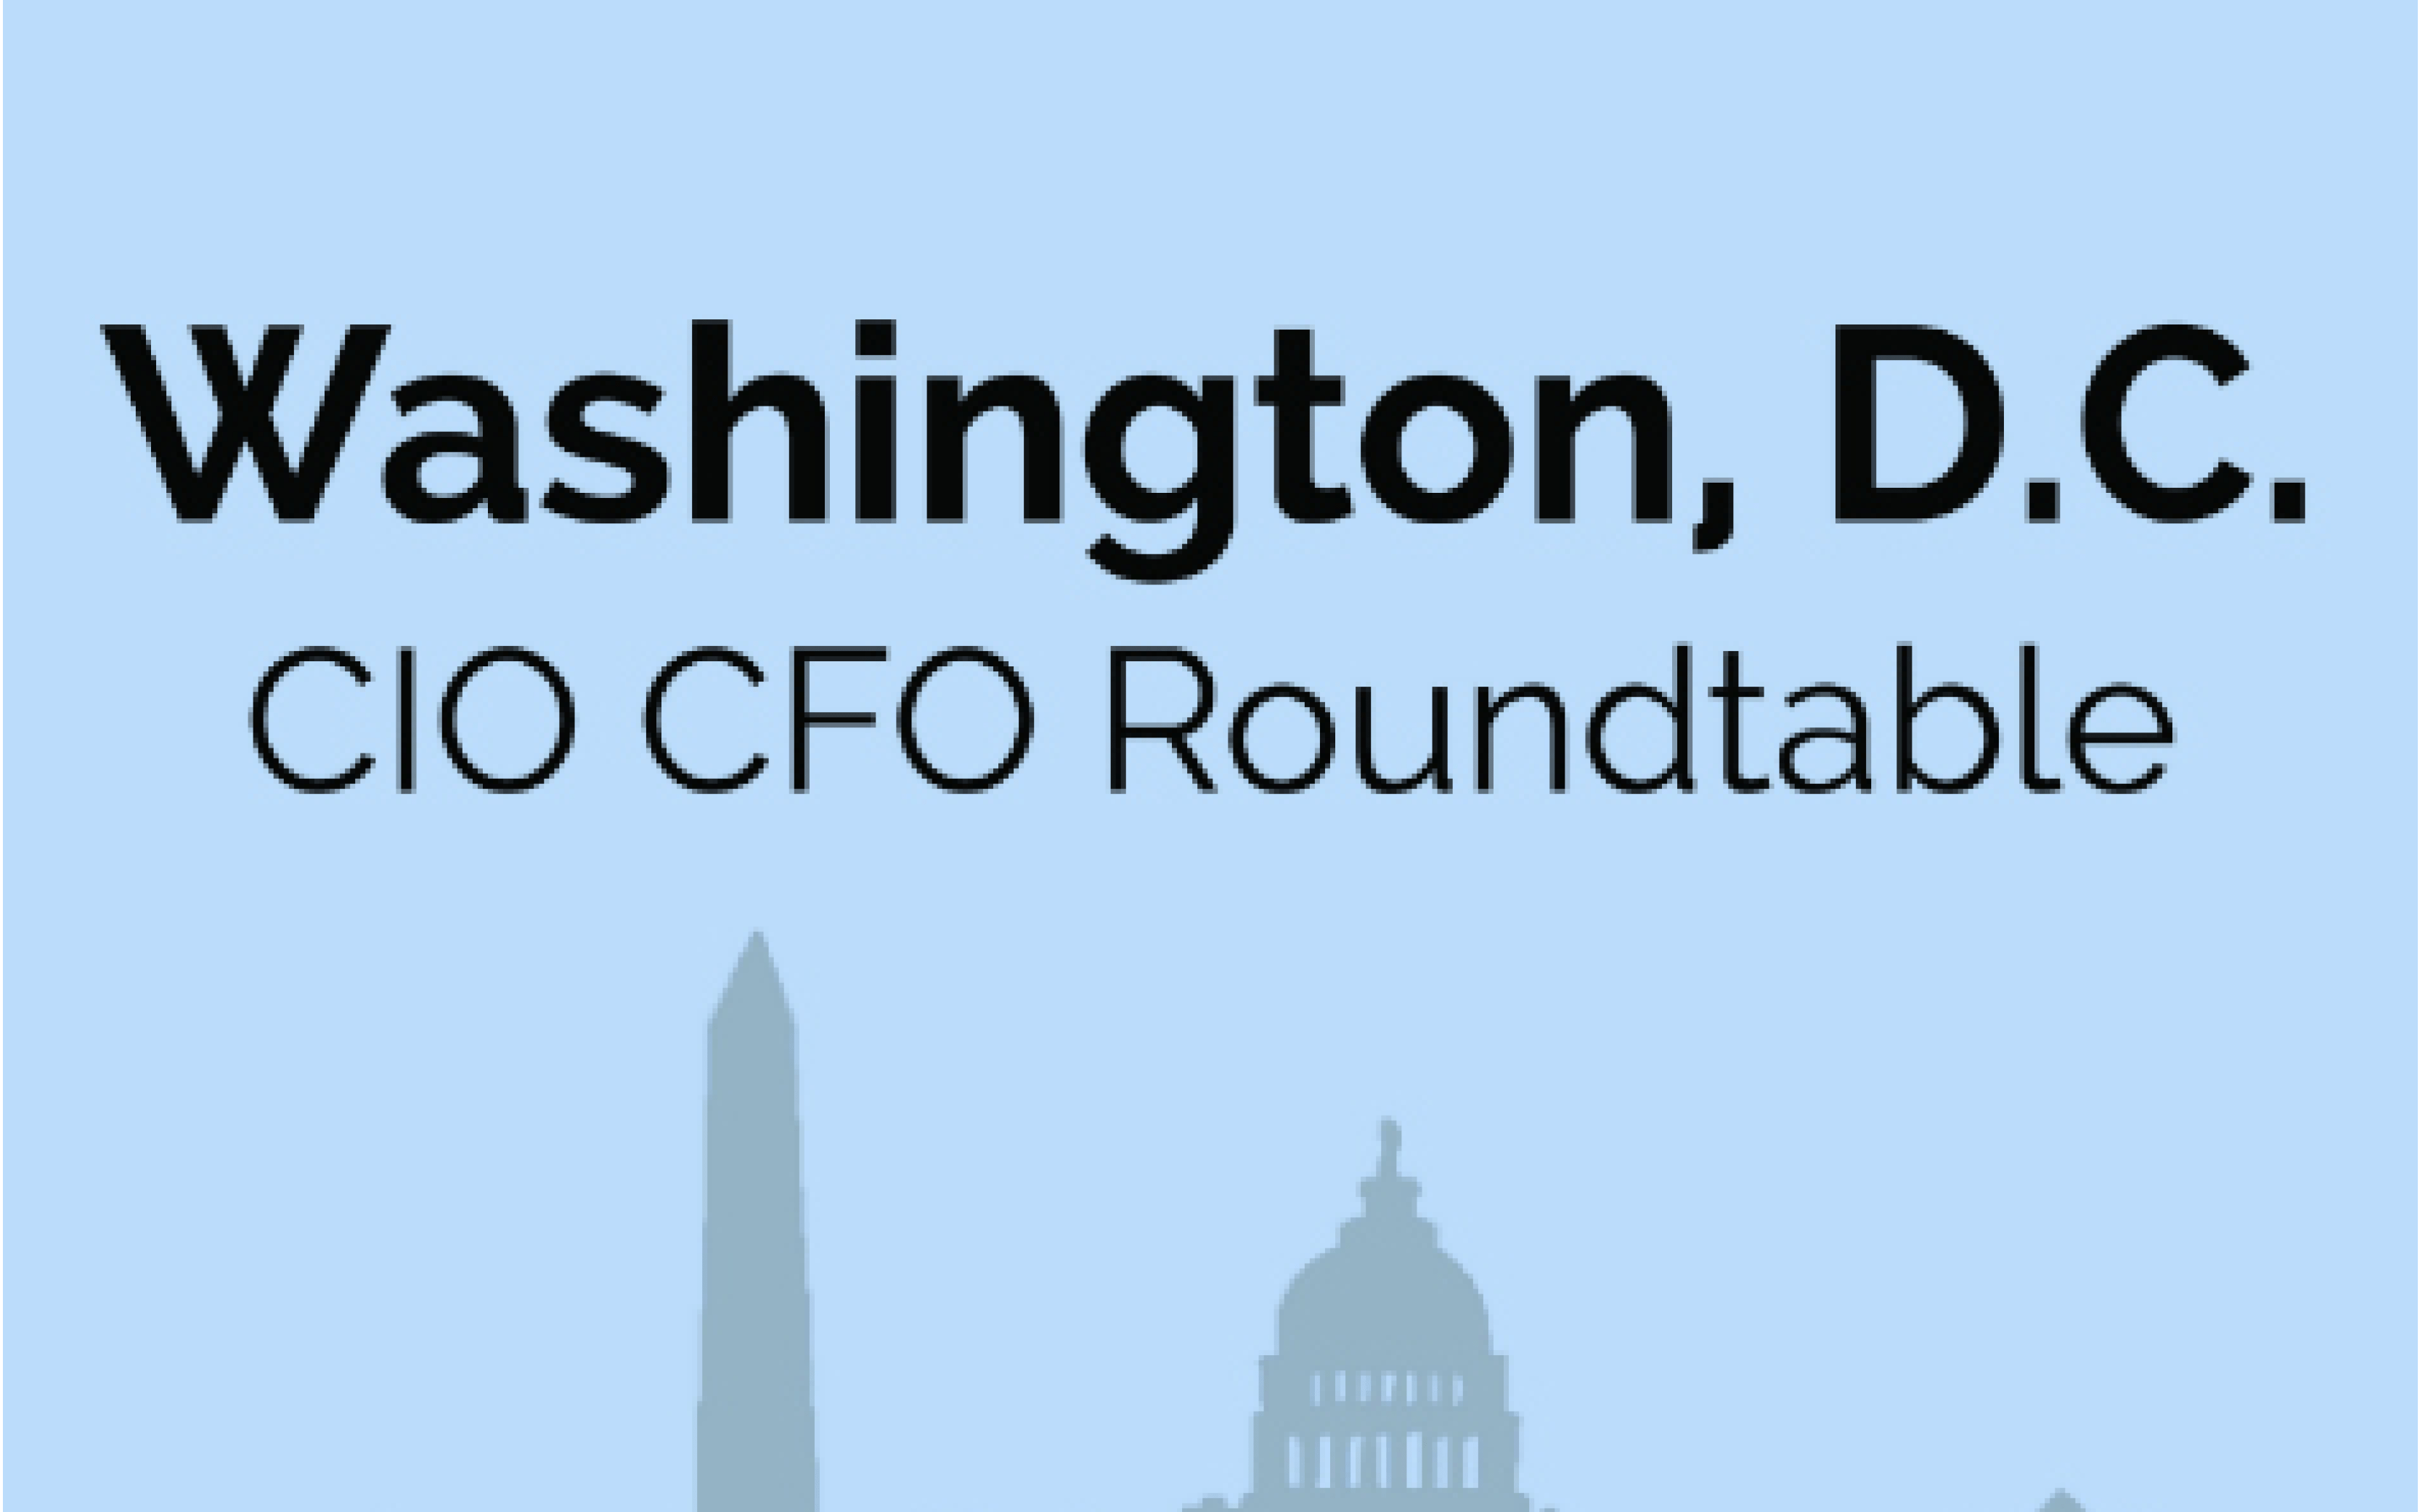 CIO CFO Executive Roundtable: Washington, D.C.